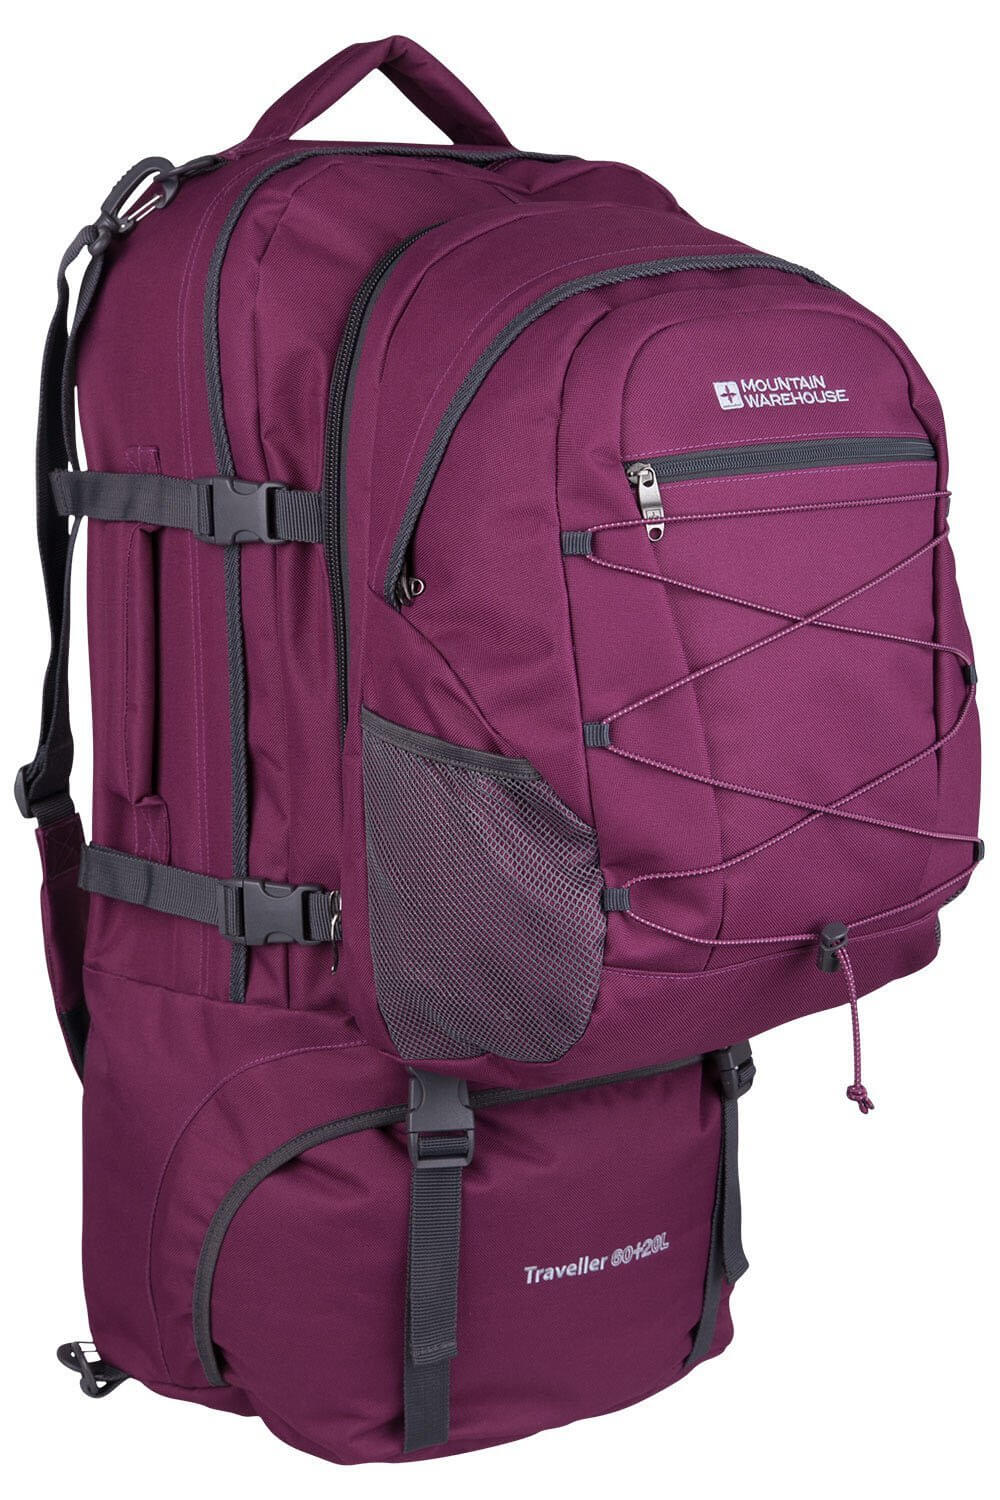 80L Travel Backpack - Where's Mollie